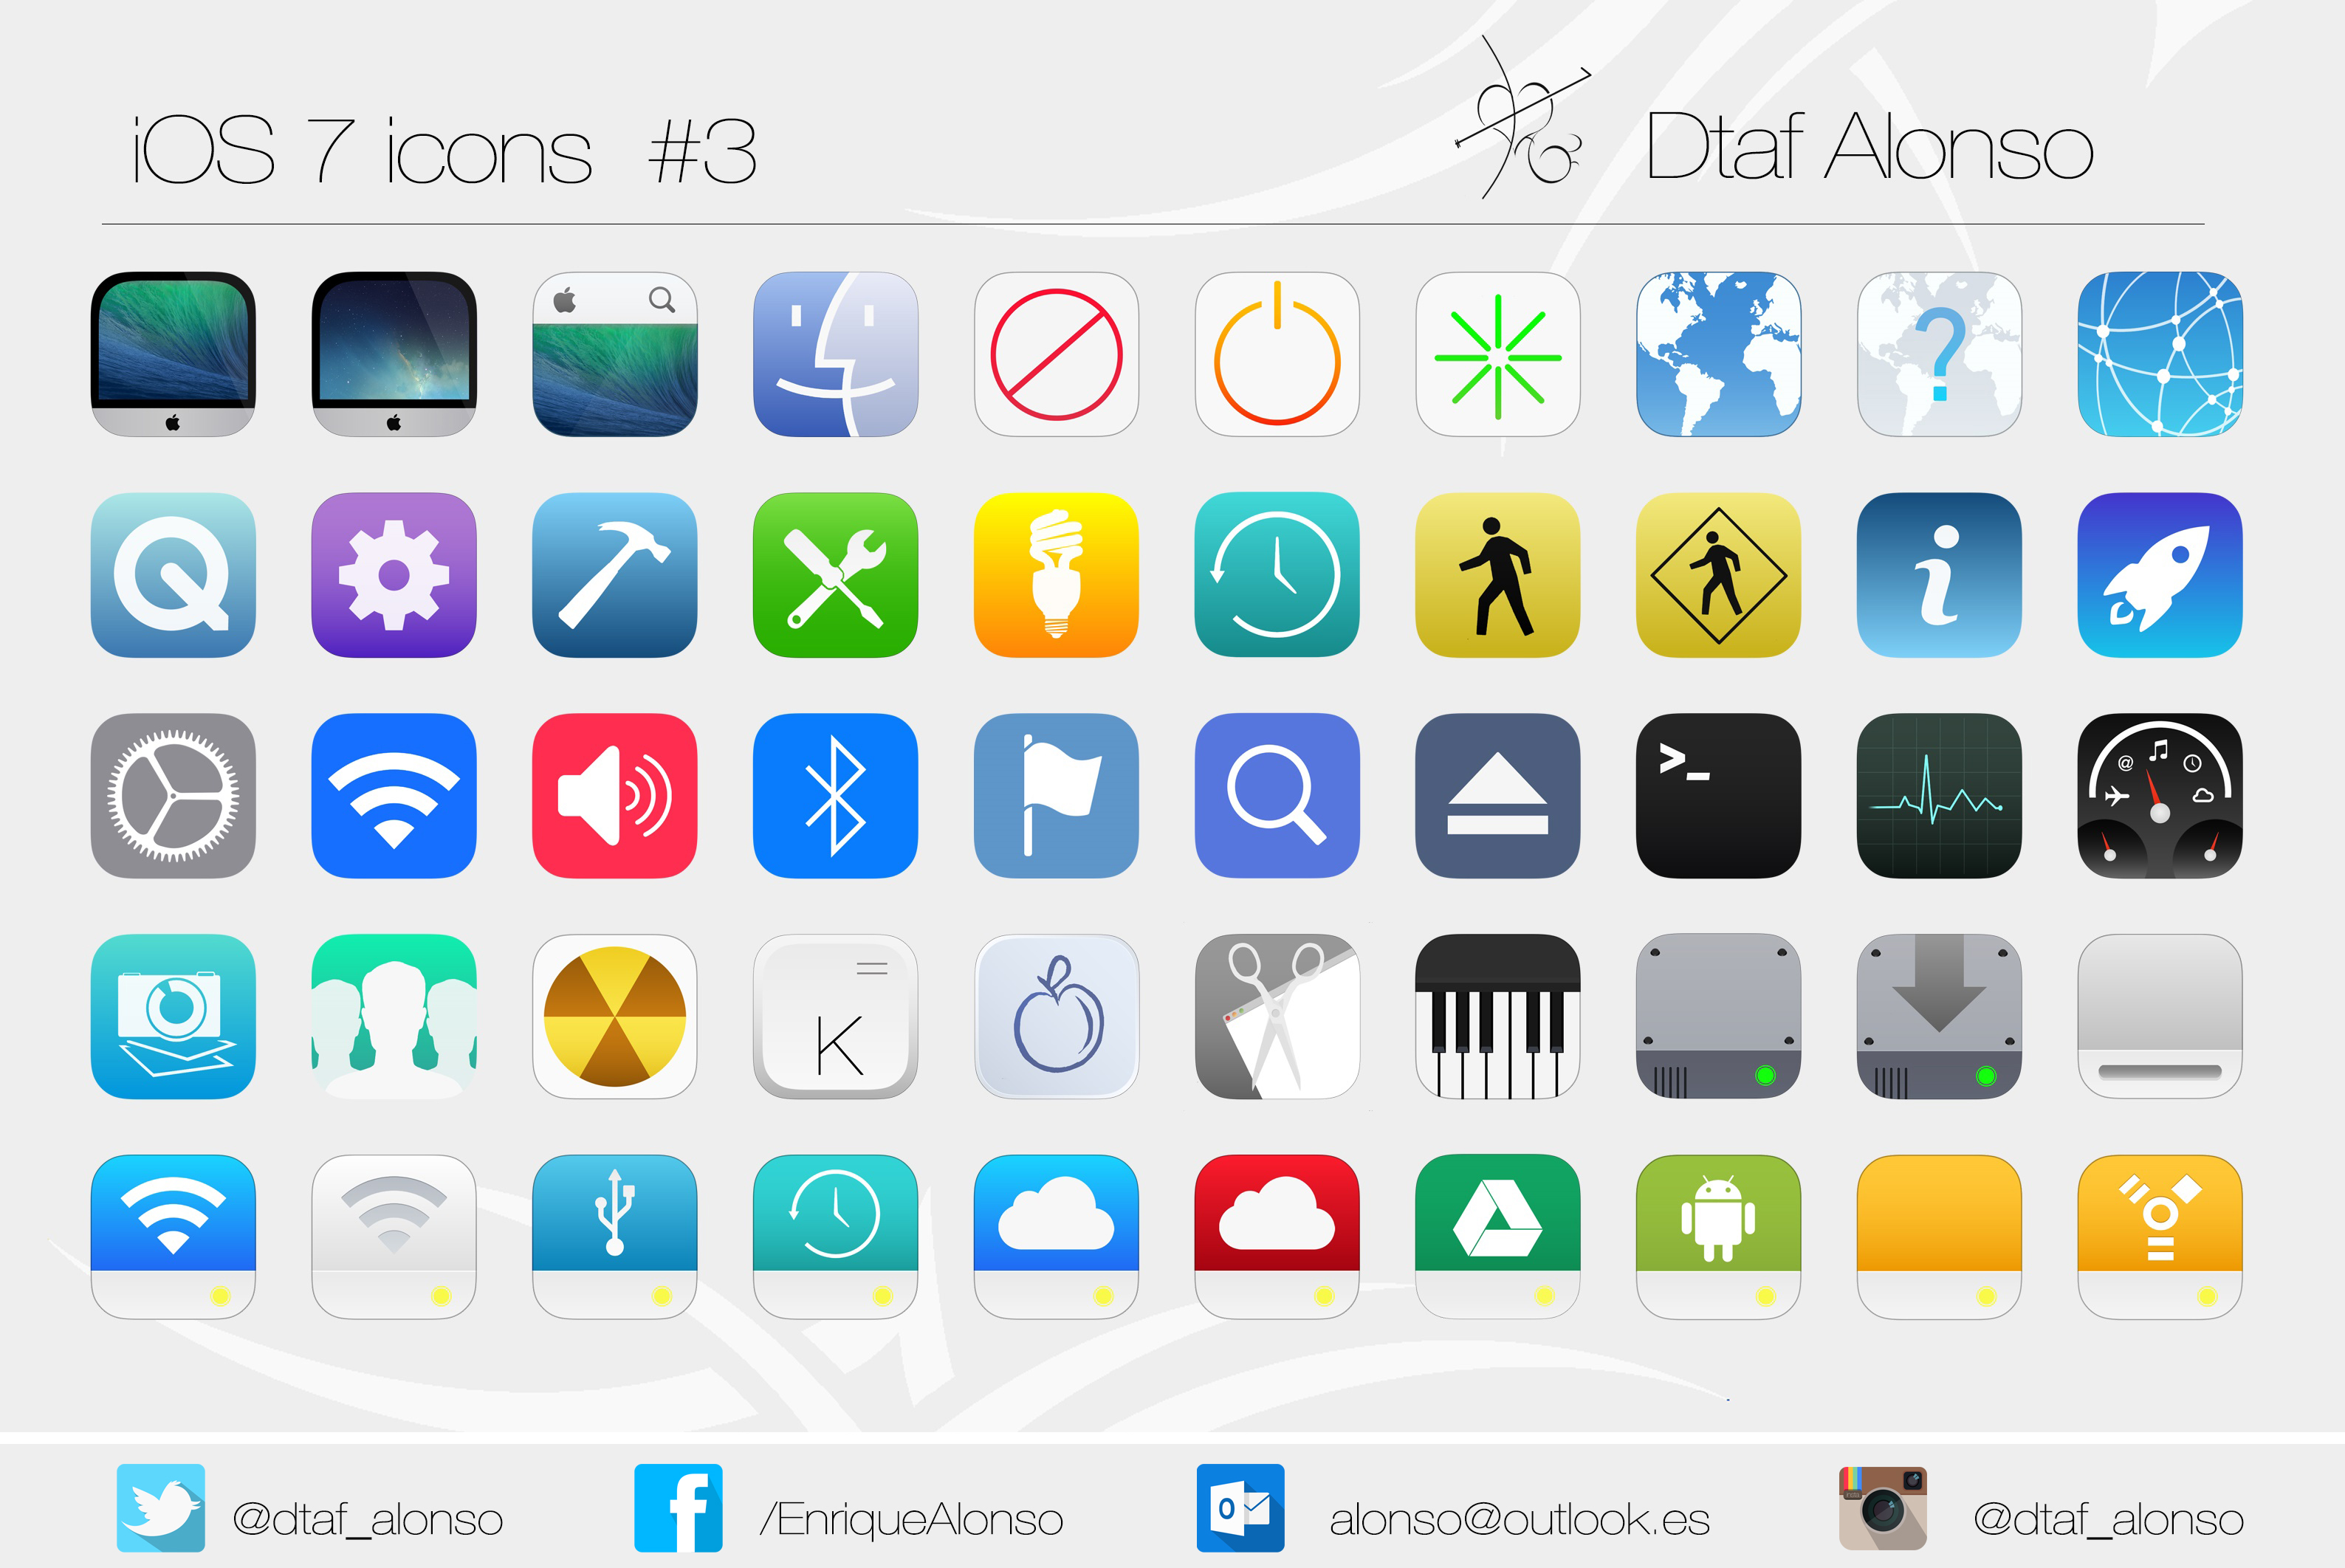 7 ios 7 icons images iphone app icon ios 7 download ios